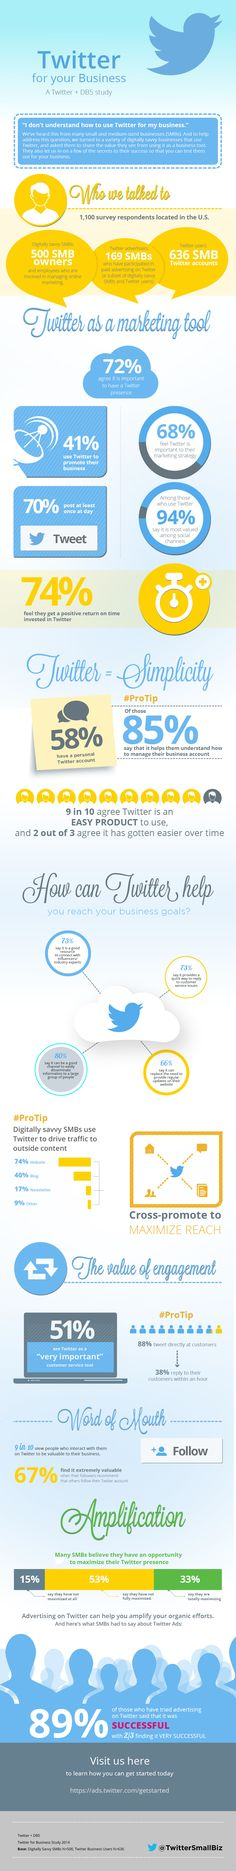 How To Use #Twitter For Your Small #Business #infographic